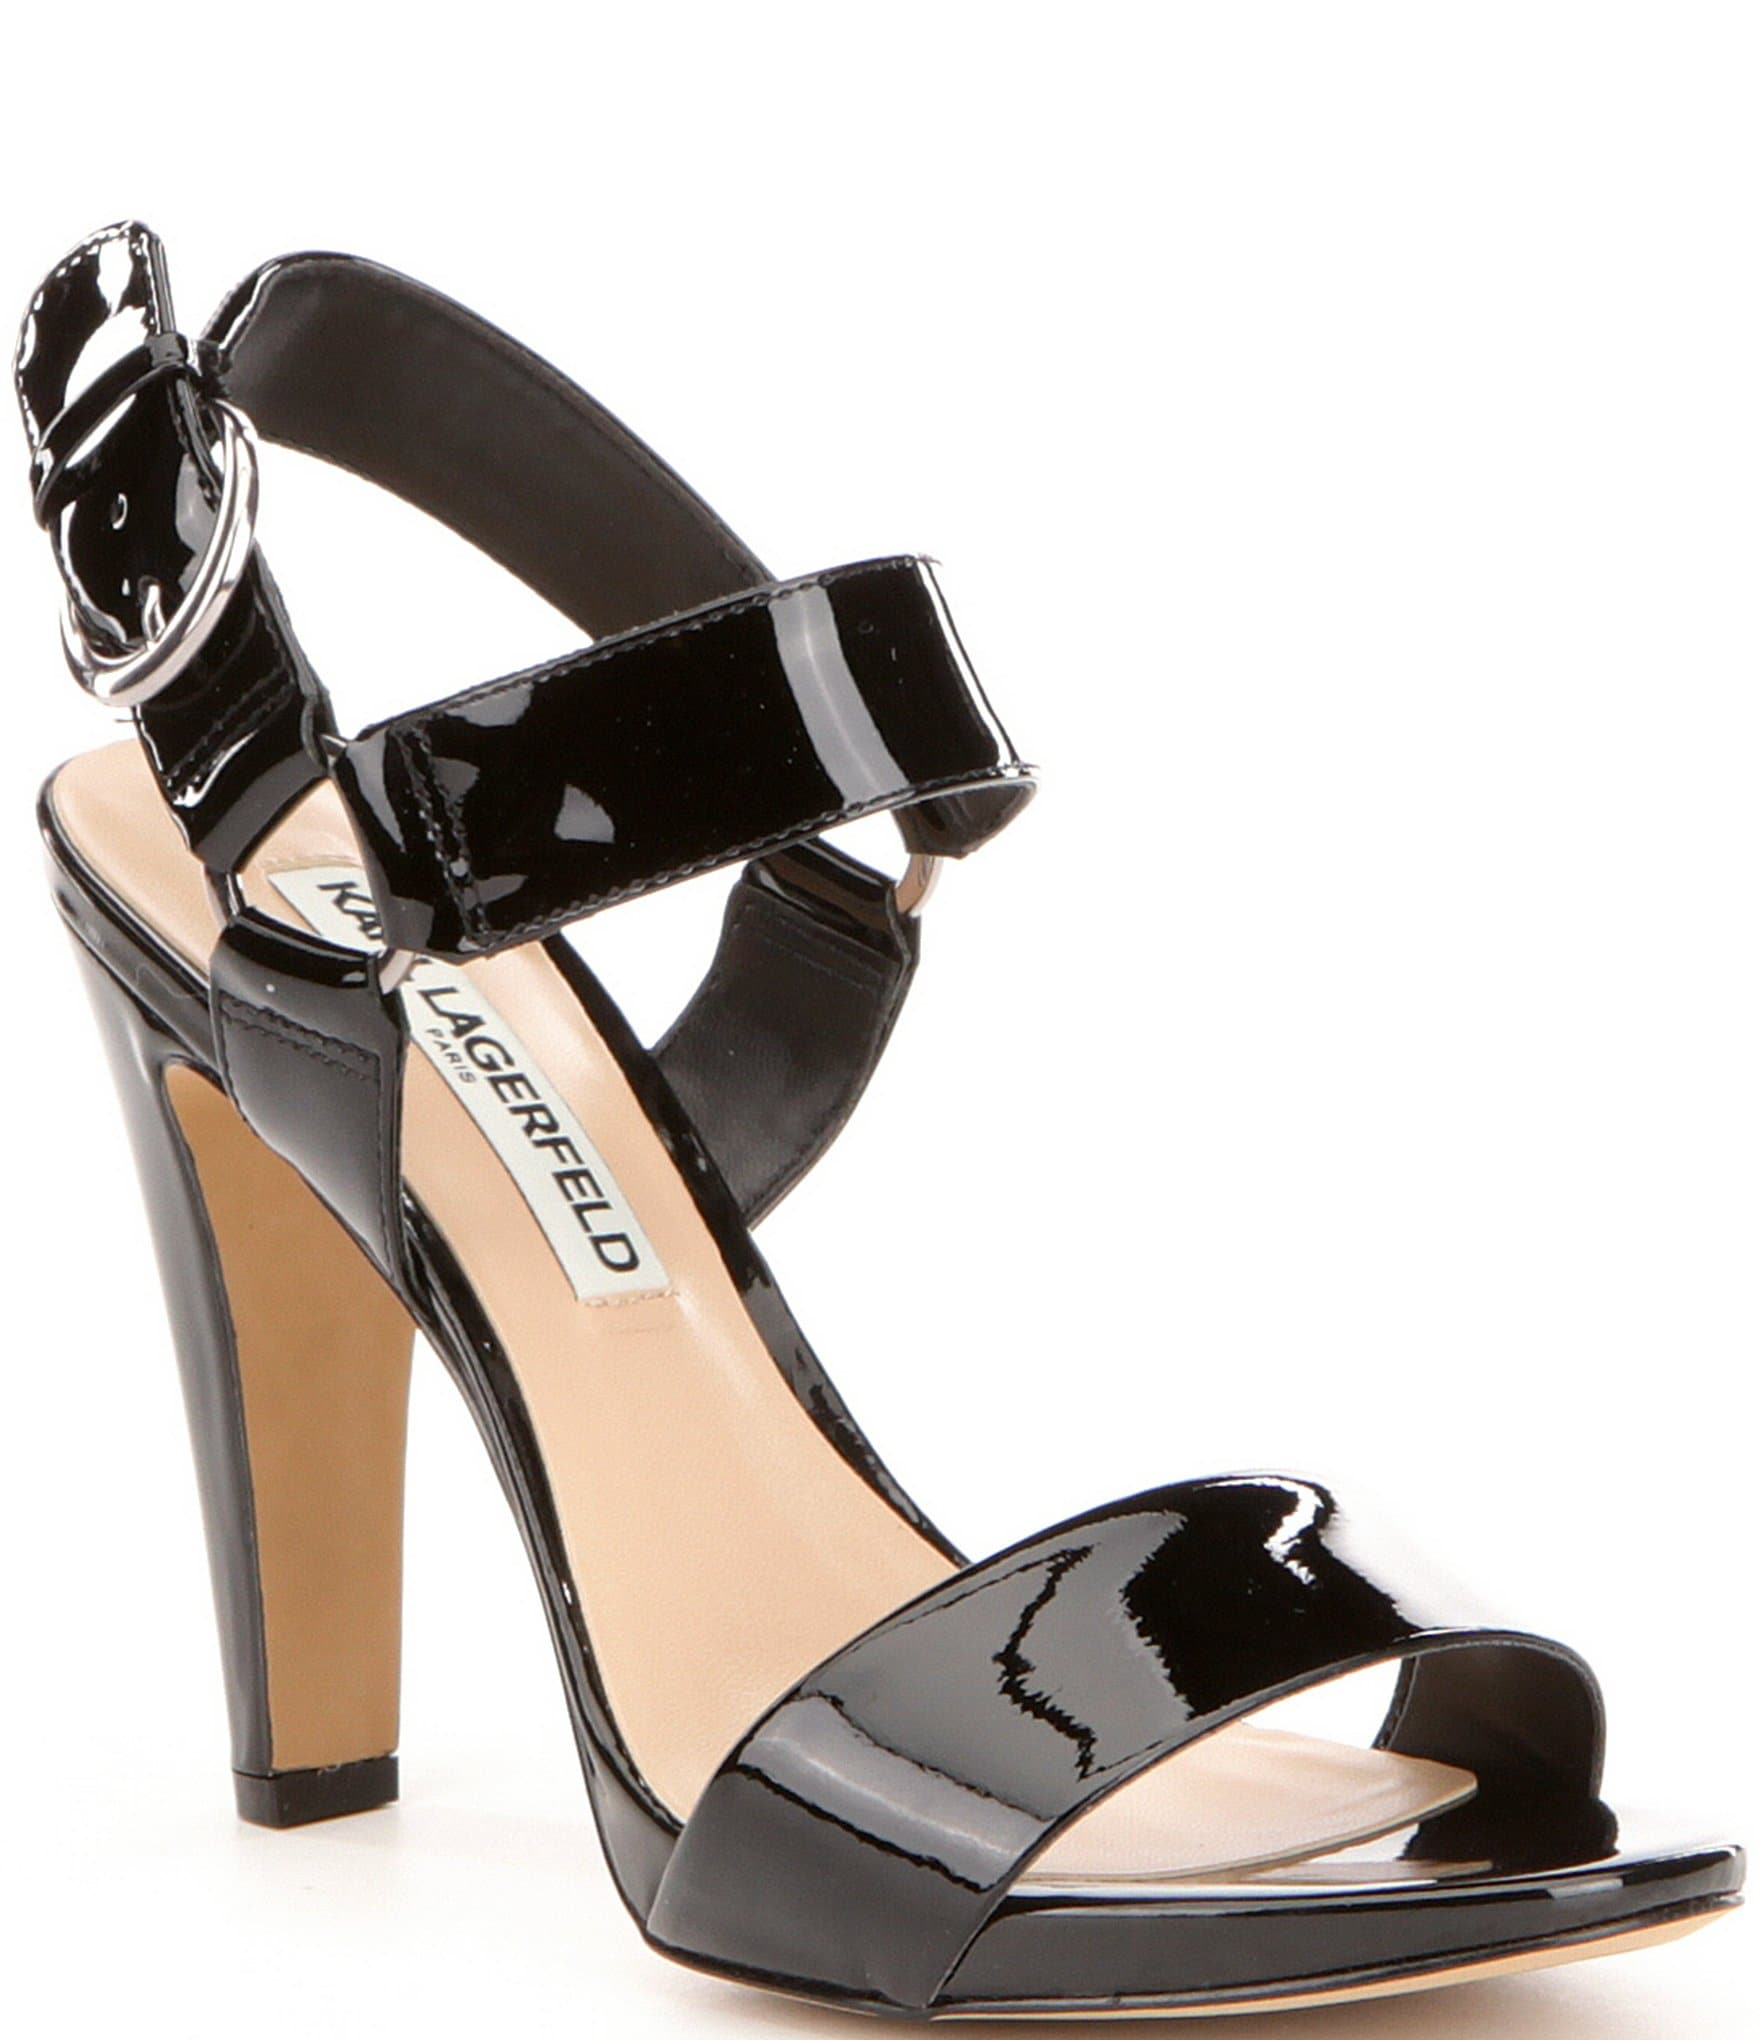 Karl Lagerfeld Shoes Reviews